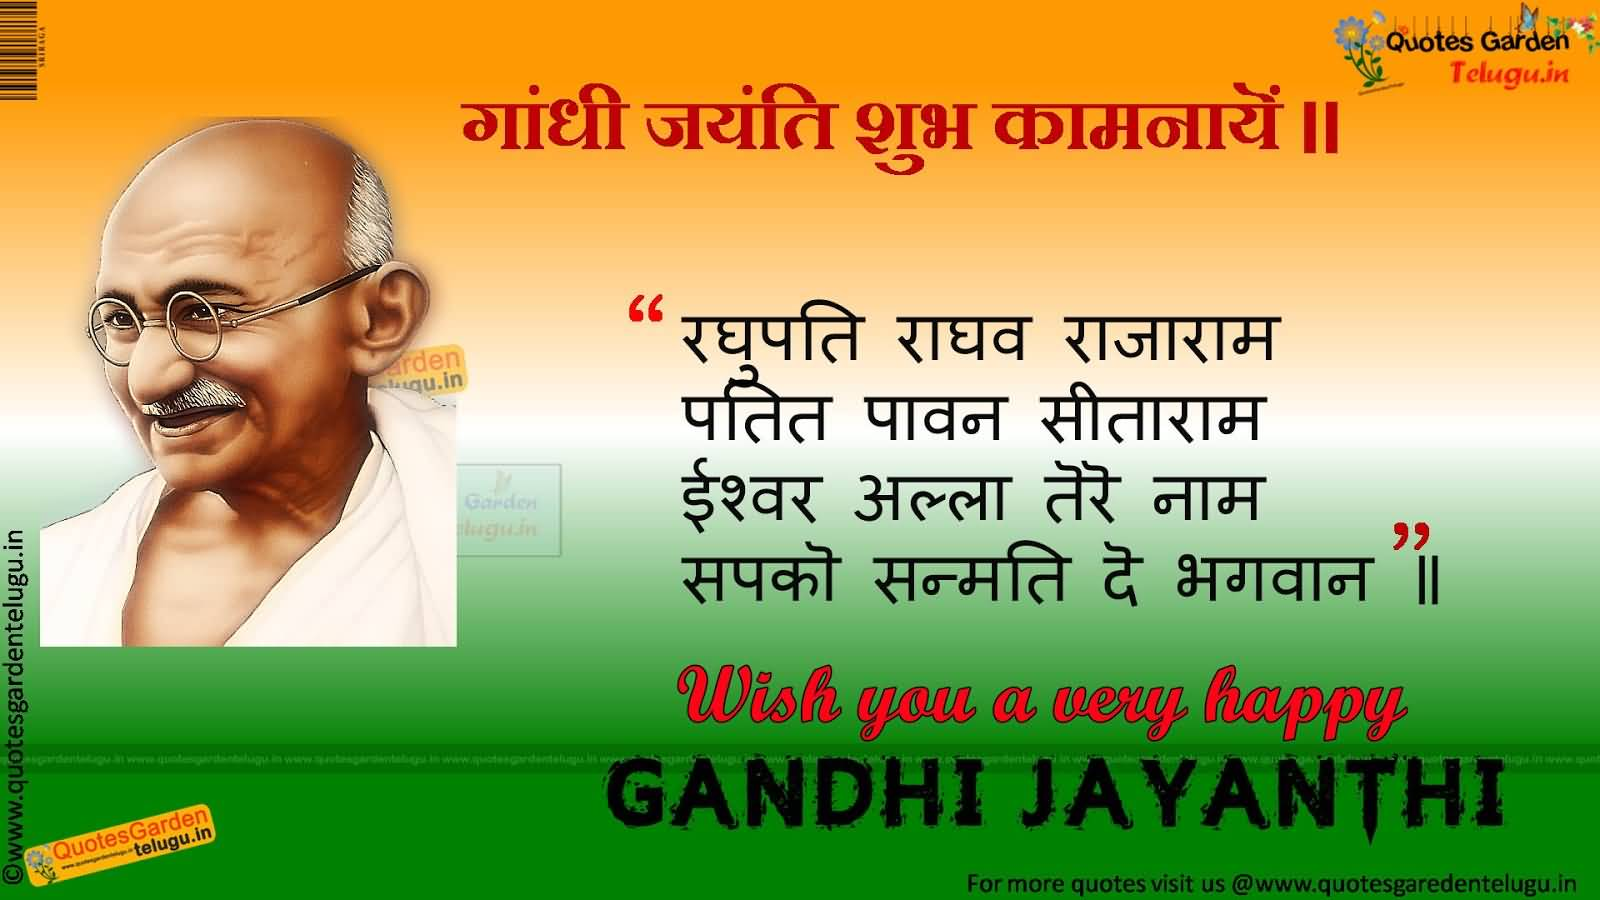 60 Best Gandhi Jayanti Wishes Pictures And Images